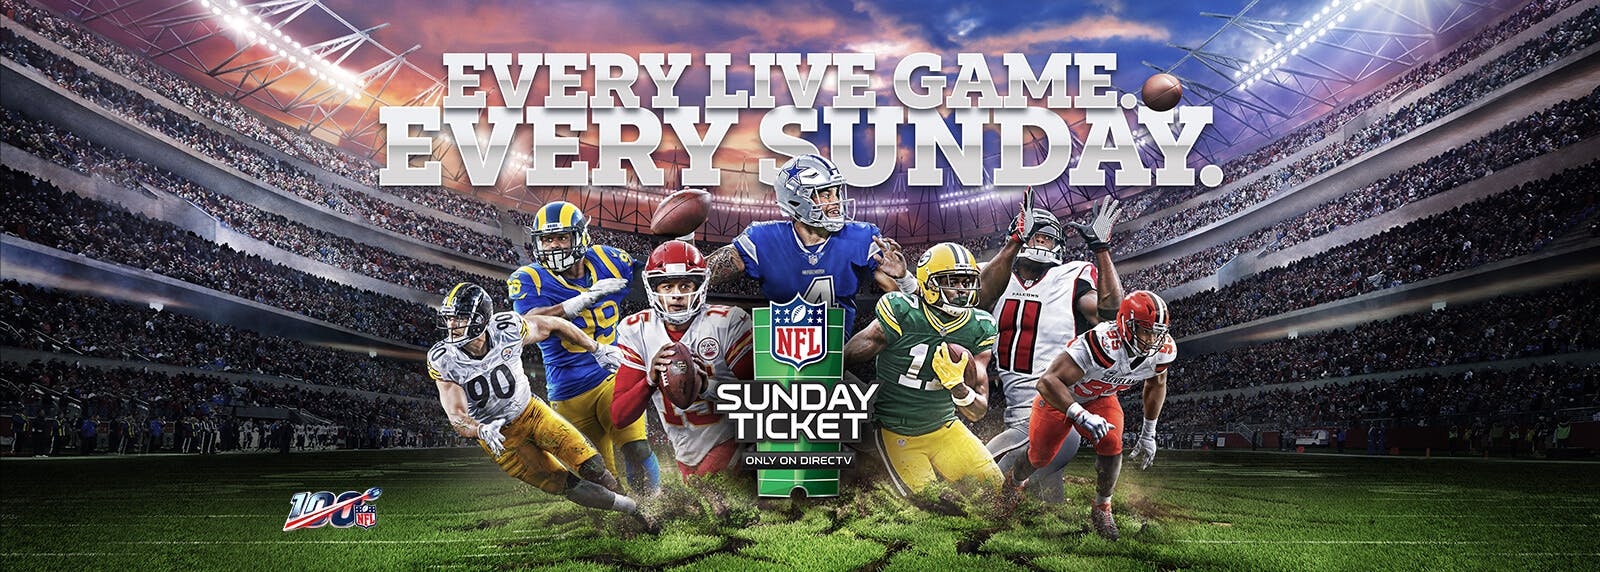 seahawks eagles nfl sunday sticket streaming